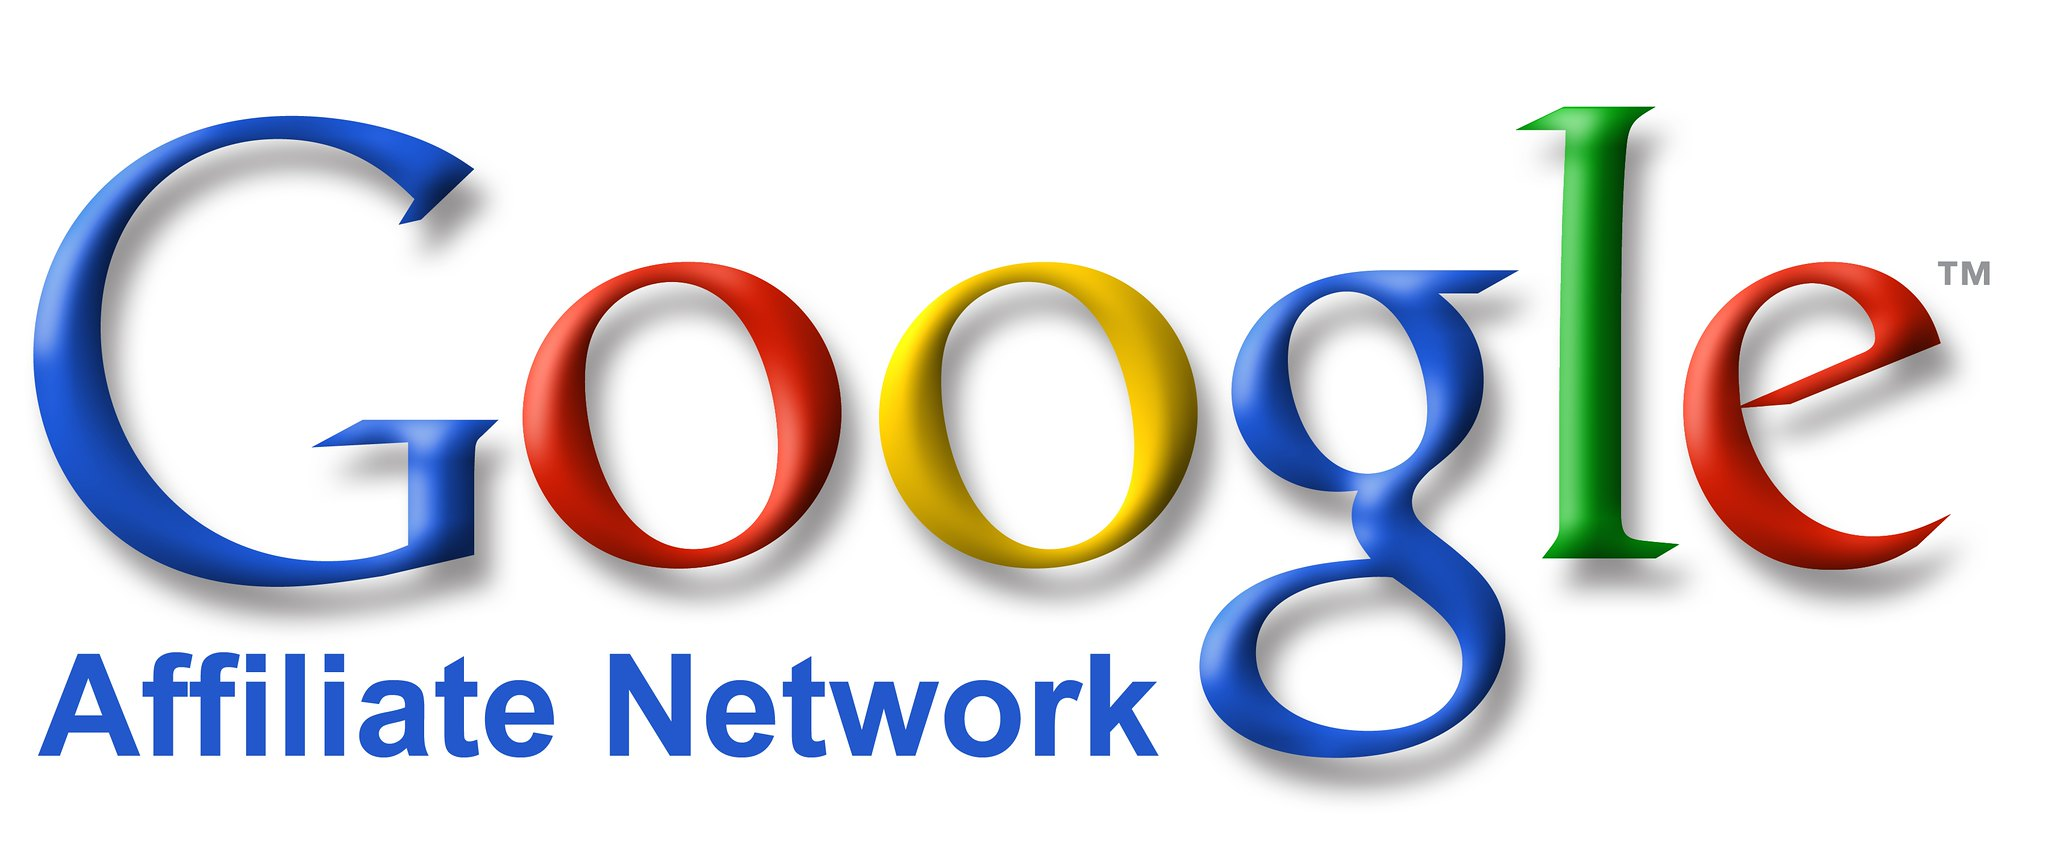 Google Affiliate Network (GAN) June 2012 Over 50 exclusive Promotions